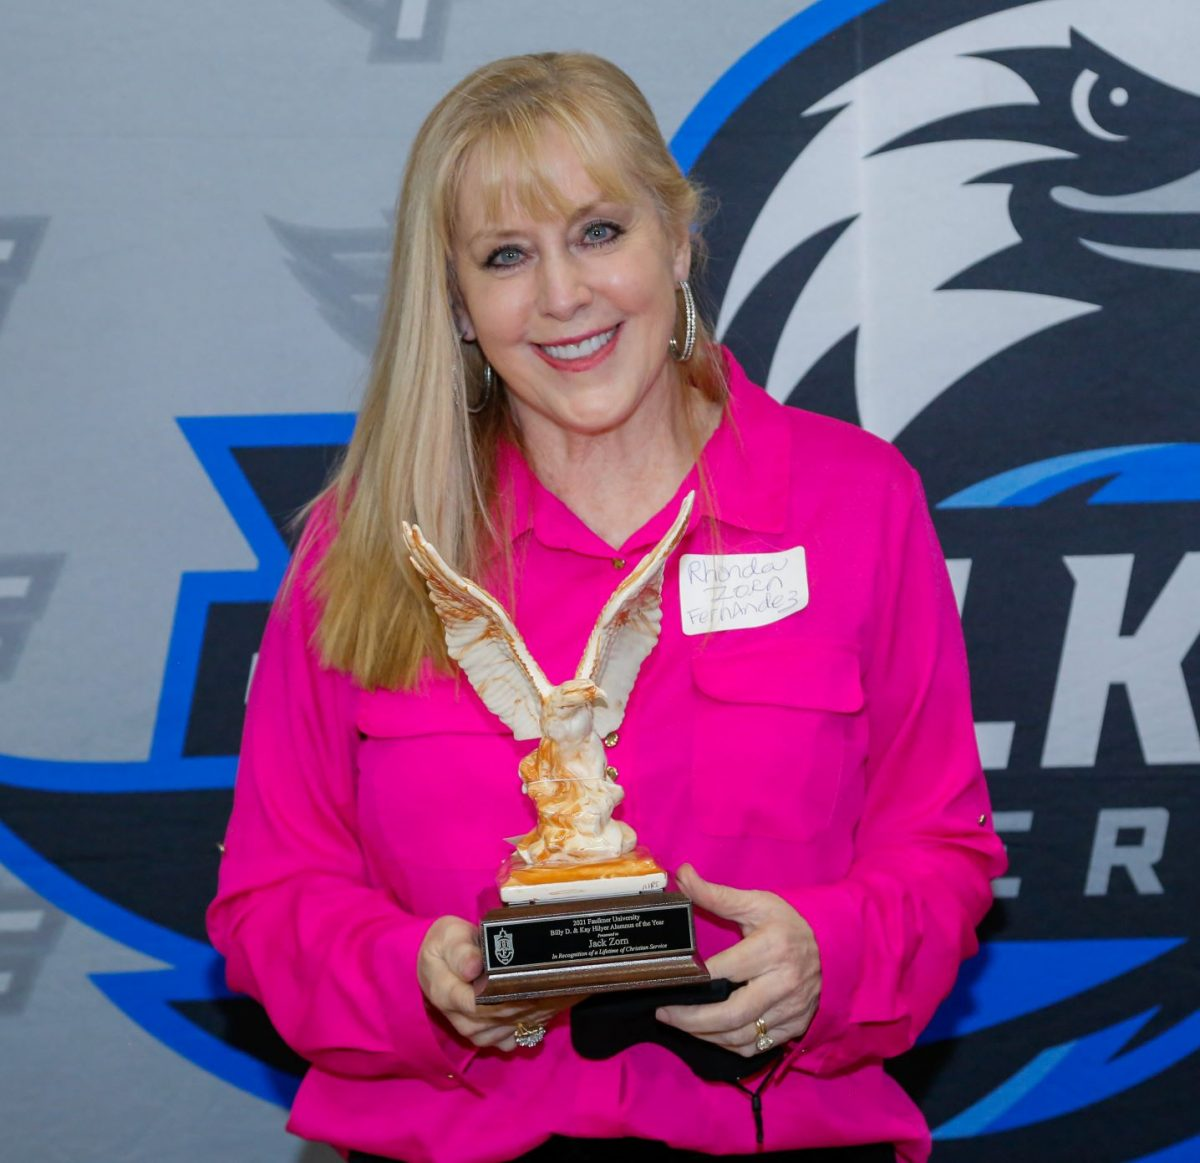 Rhonda Fernandez holds her father's Alumnus of the Year Award, an Alabama Clay eagle with its wings in flight.